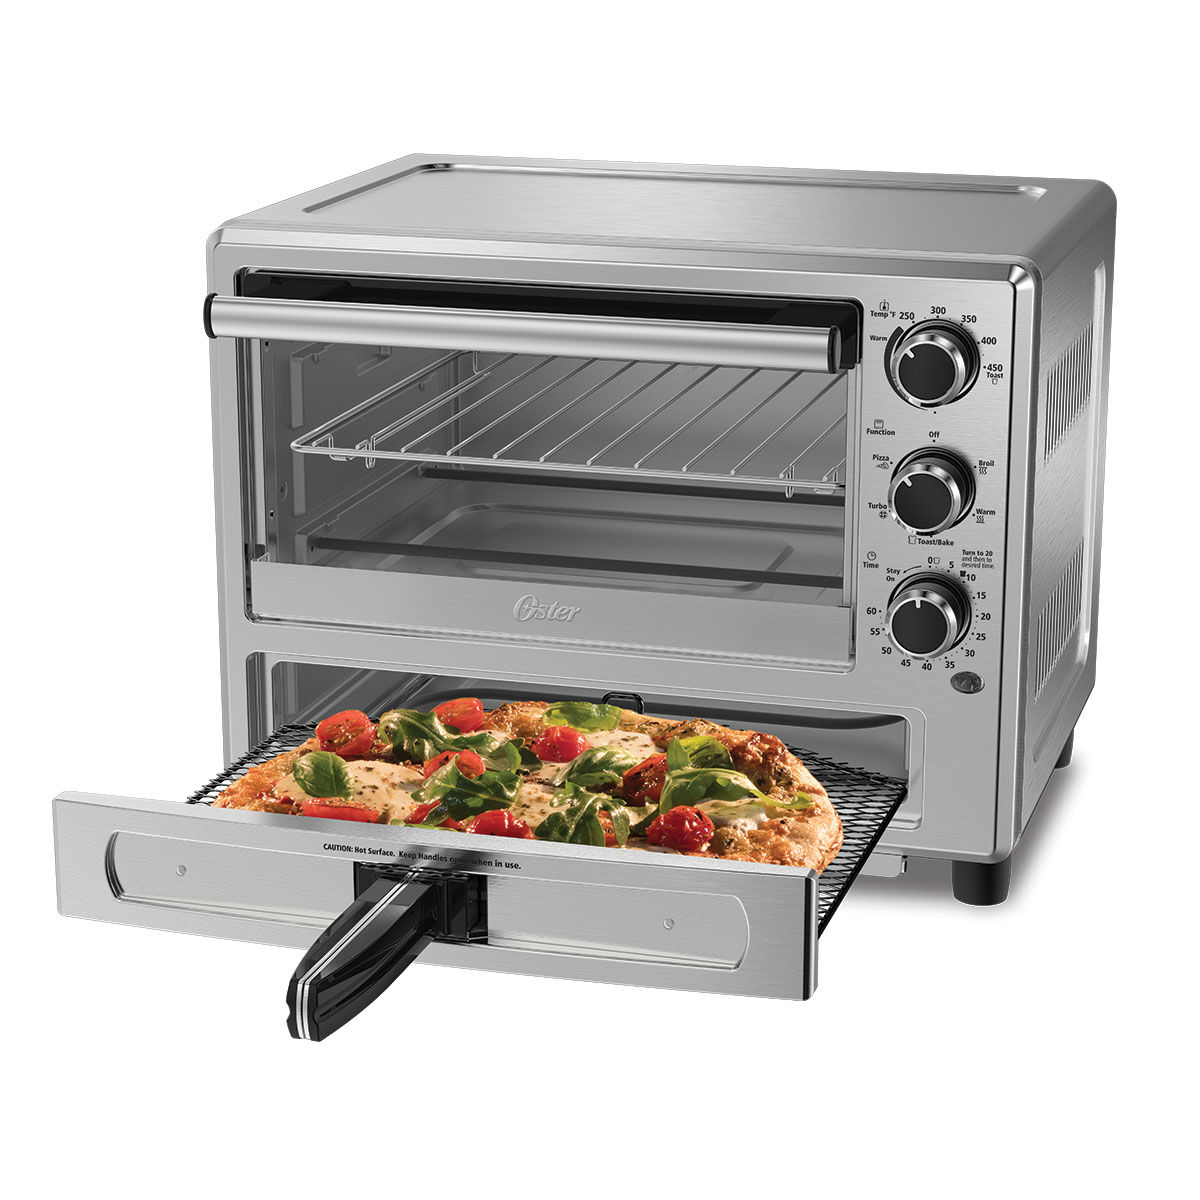 oster stainless steel convection oven with pizza drawer